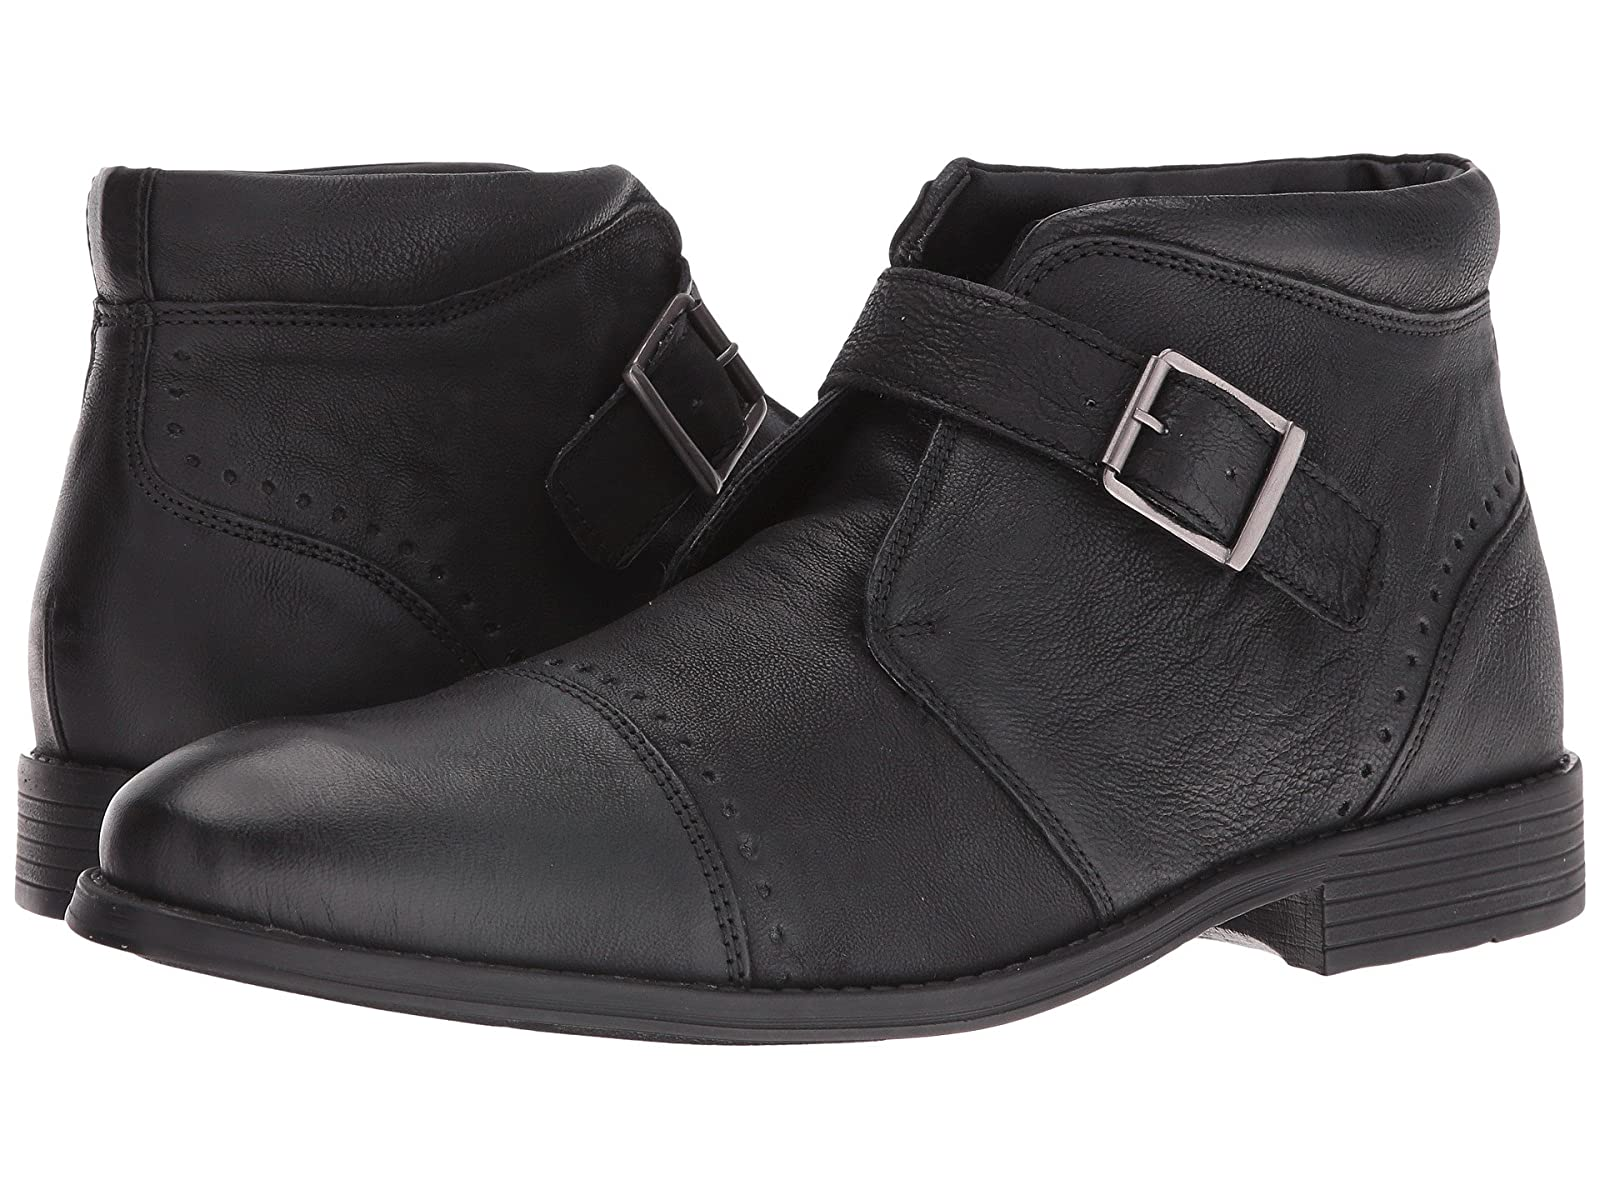 Stacy Adams Rawley Cap Toe Monk Strap BootCheap and distinctive eye-catching shoes